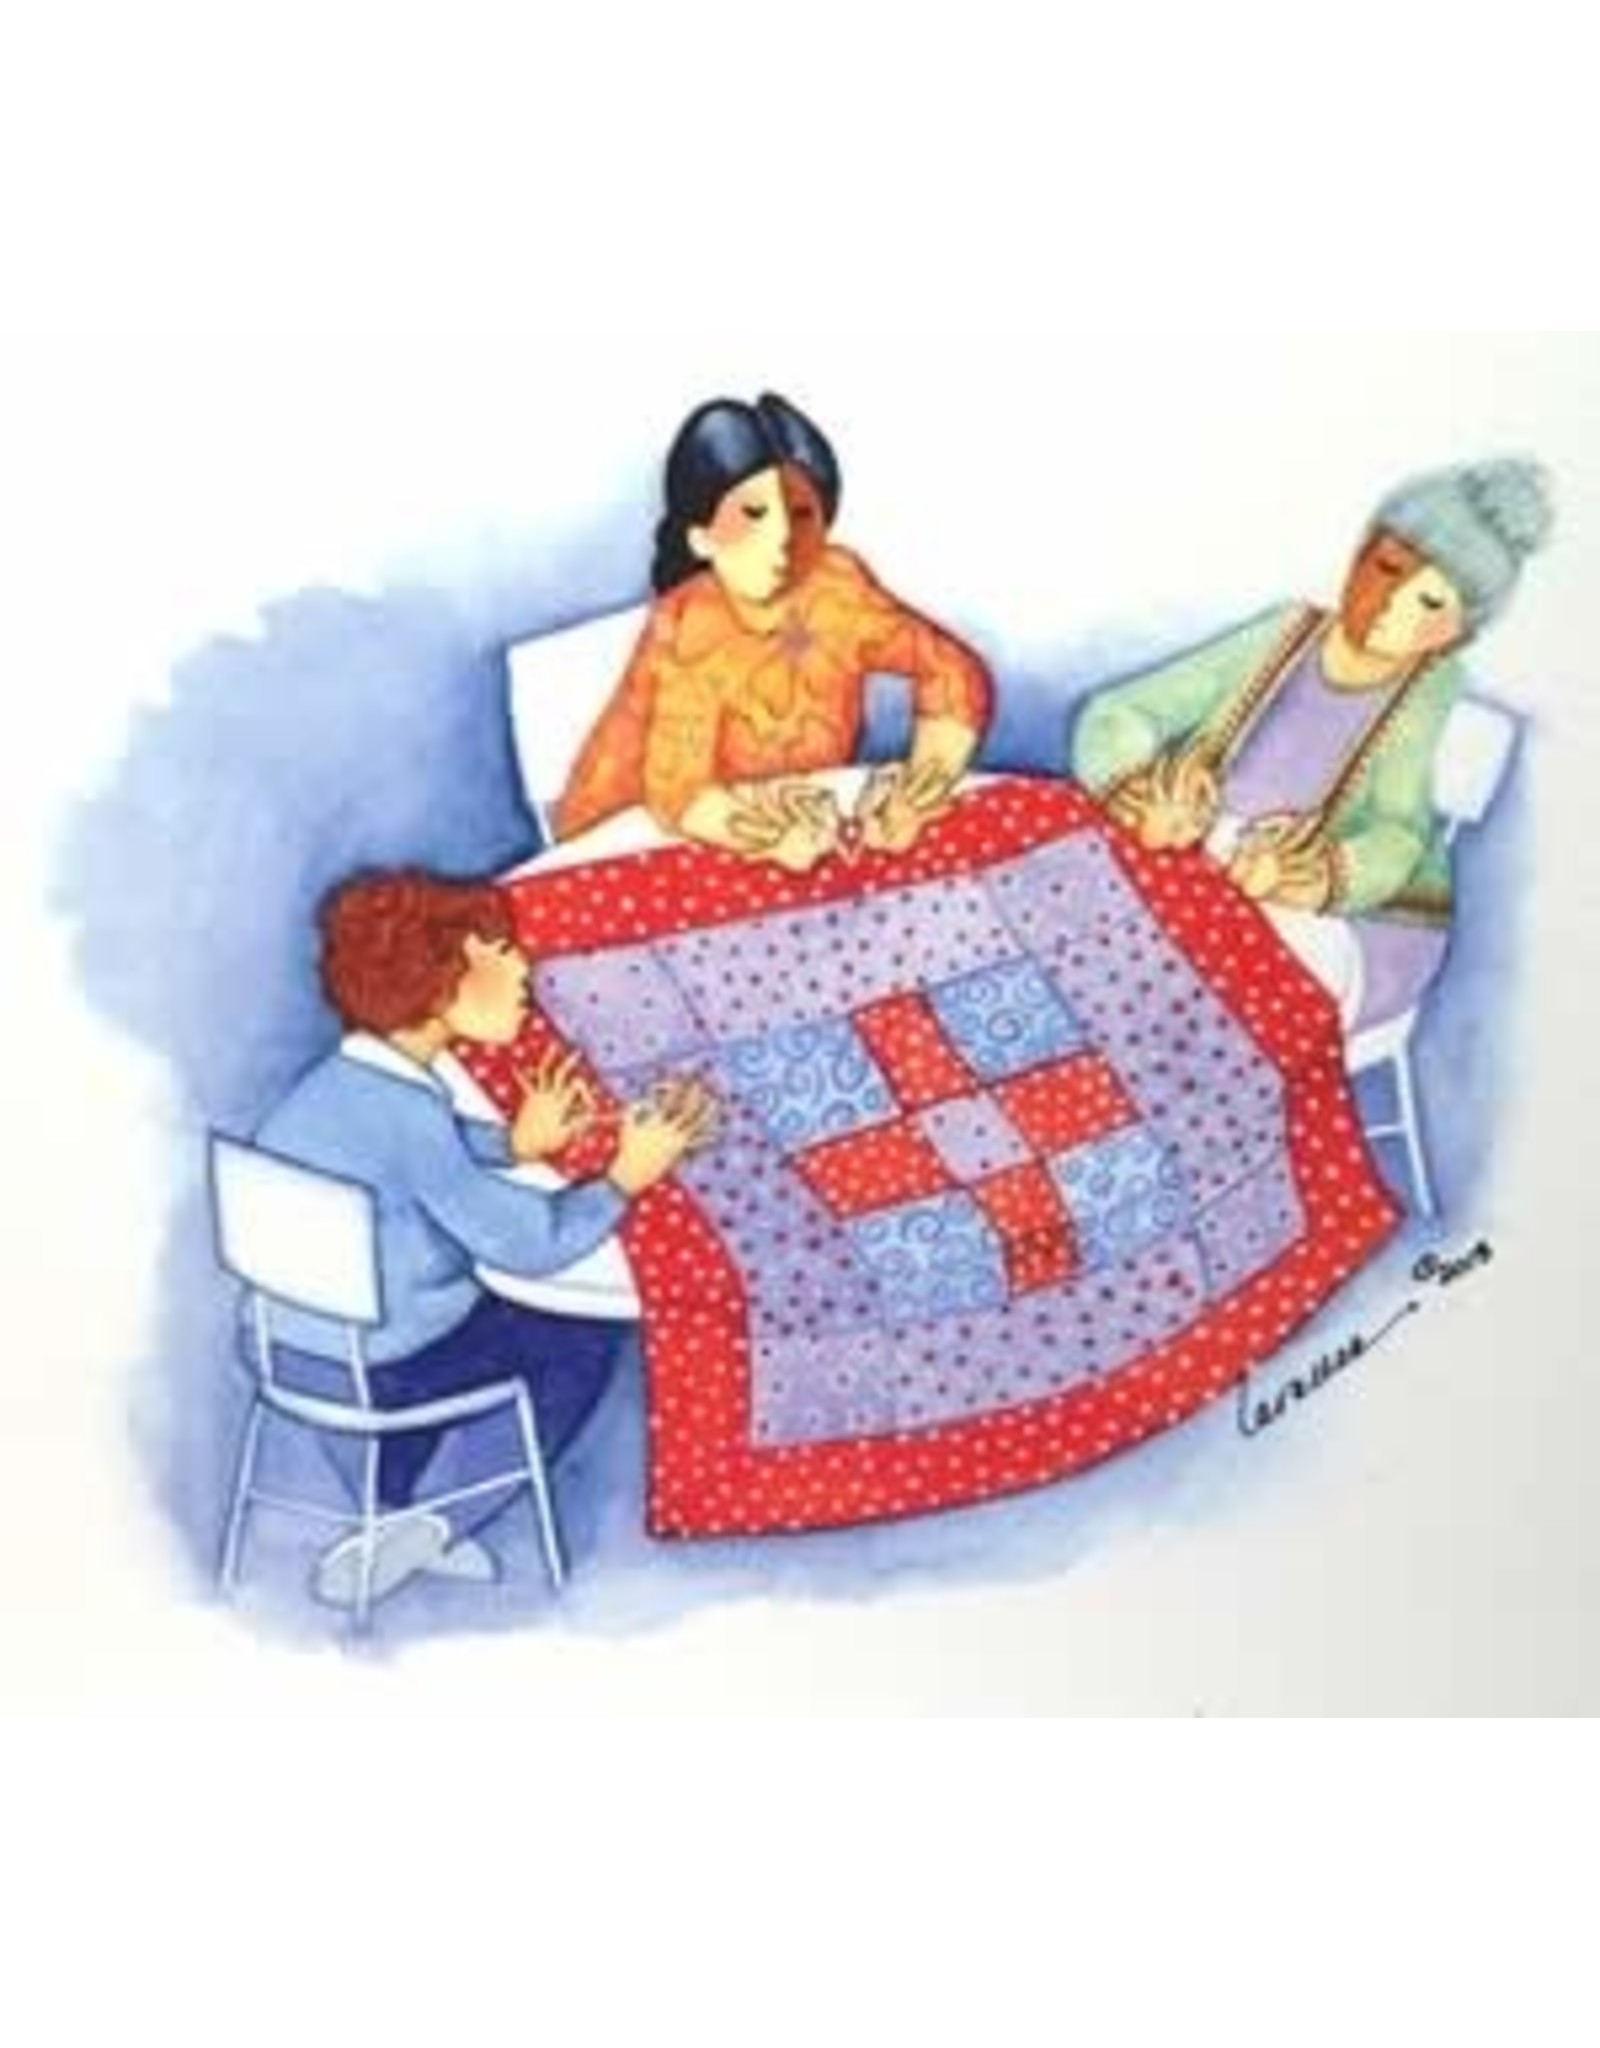 Barbara Lavallee Tying a Quilt | Barbara Lavallee